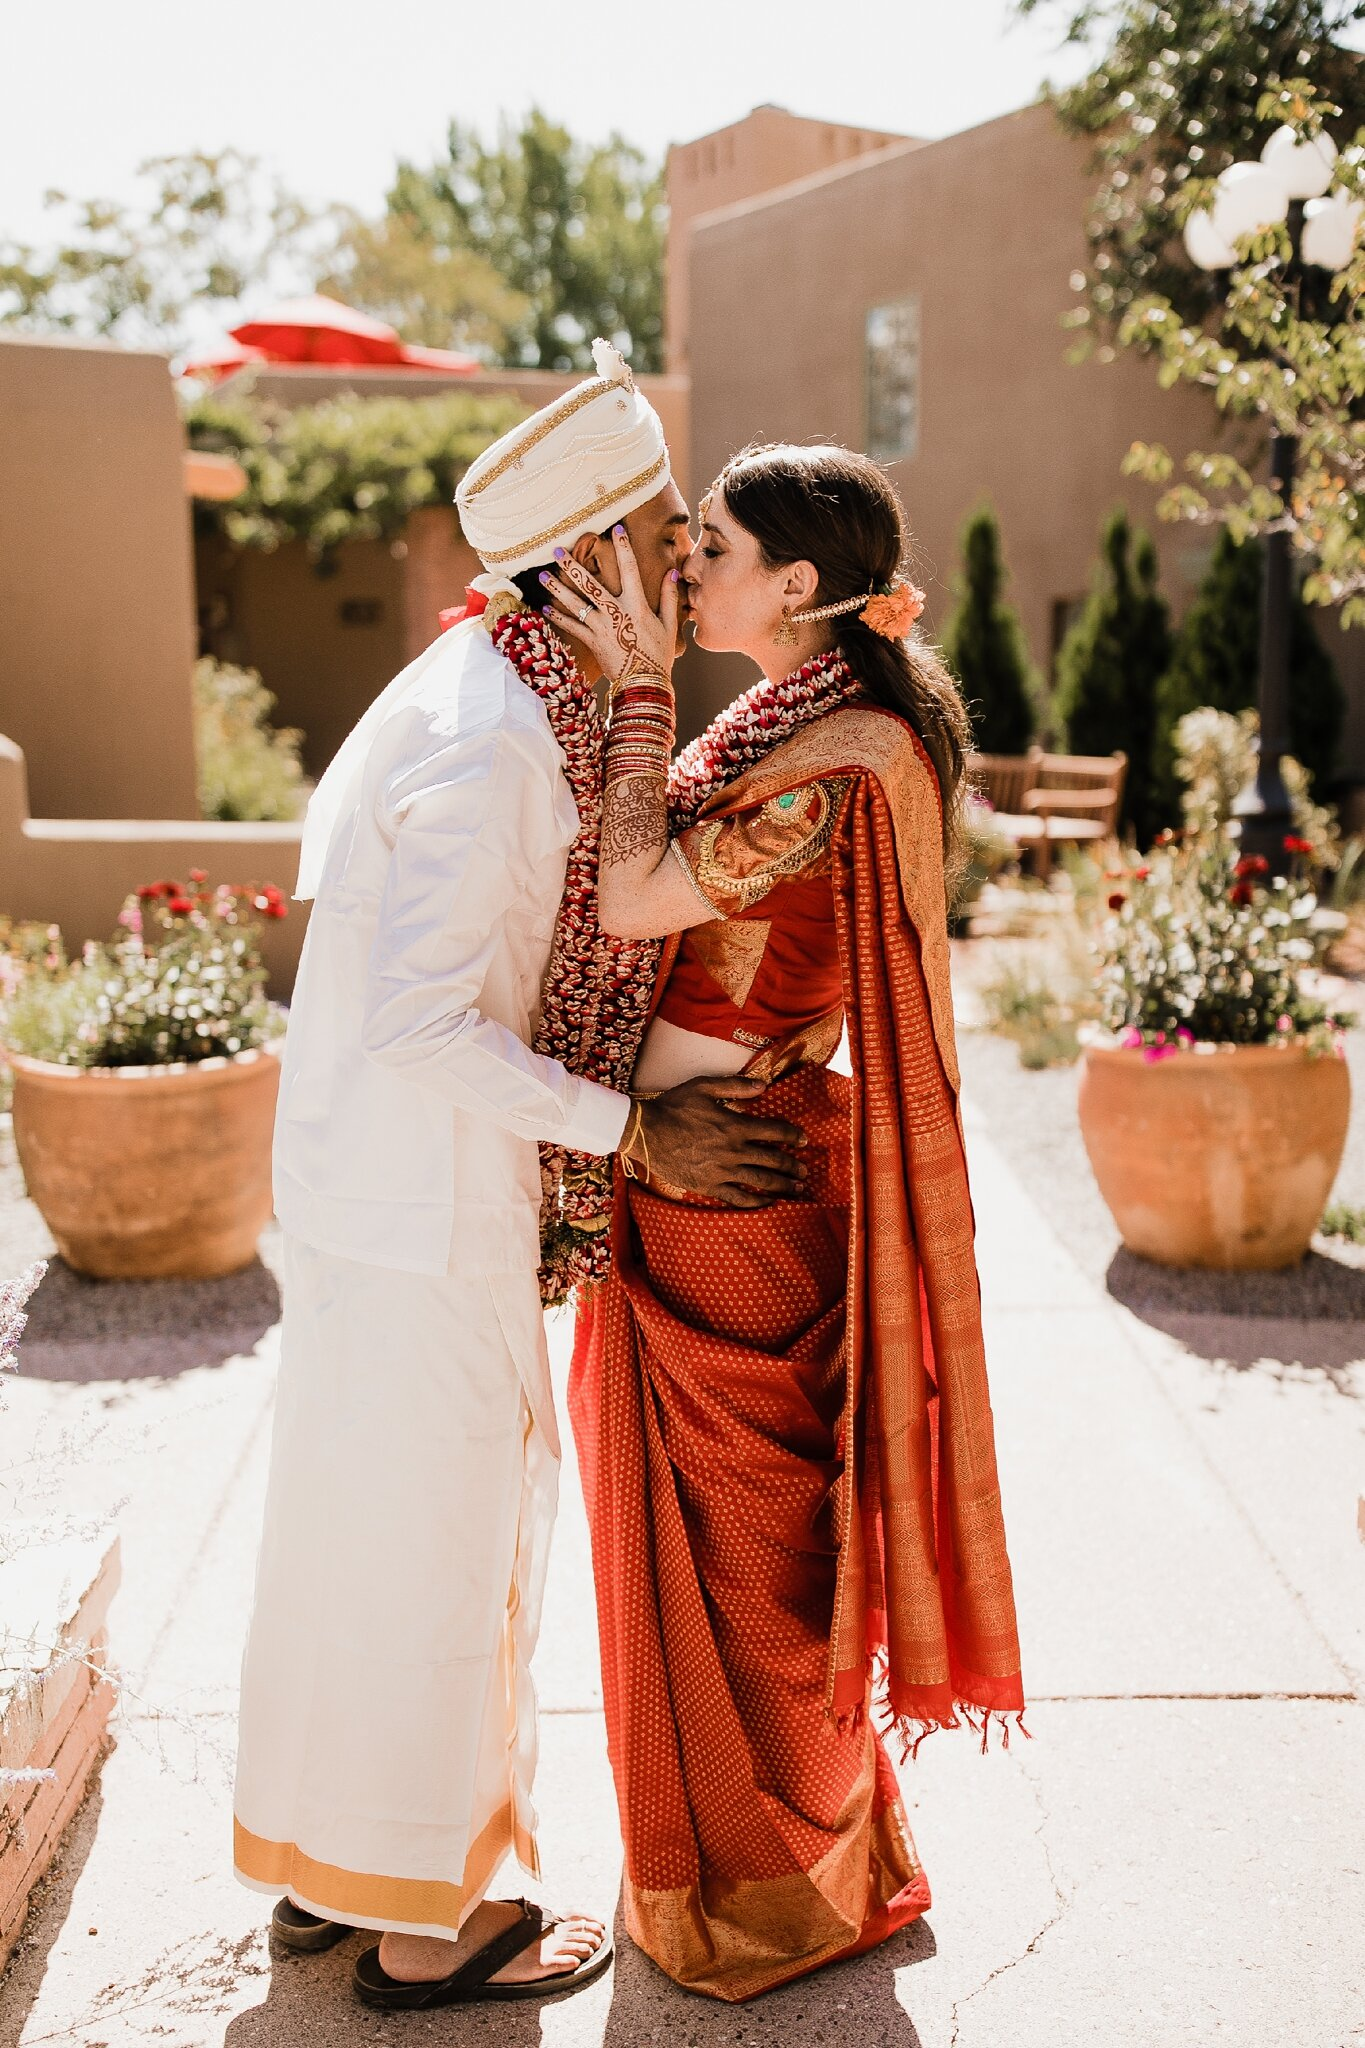 Alicia+lucia+photography+-+albuquerque+wedding+photographer+-+santa+fe+wedding+photography+-+new+mexico+wedding+photographer+-+new+mexico+wedding+-+hindu+wedding+-+catholic+wedding+-+multicultural+wedding+-+santa+fe+wedding_0235.jpg